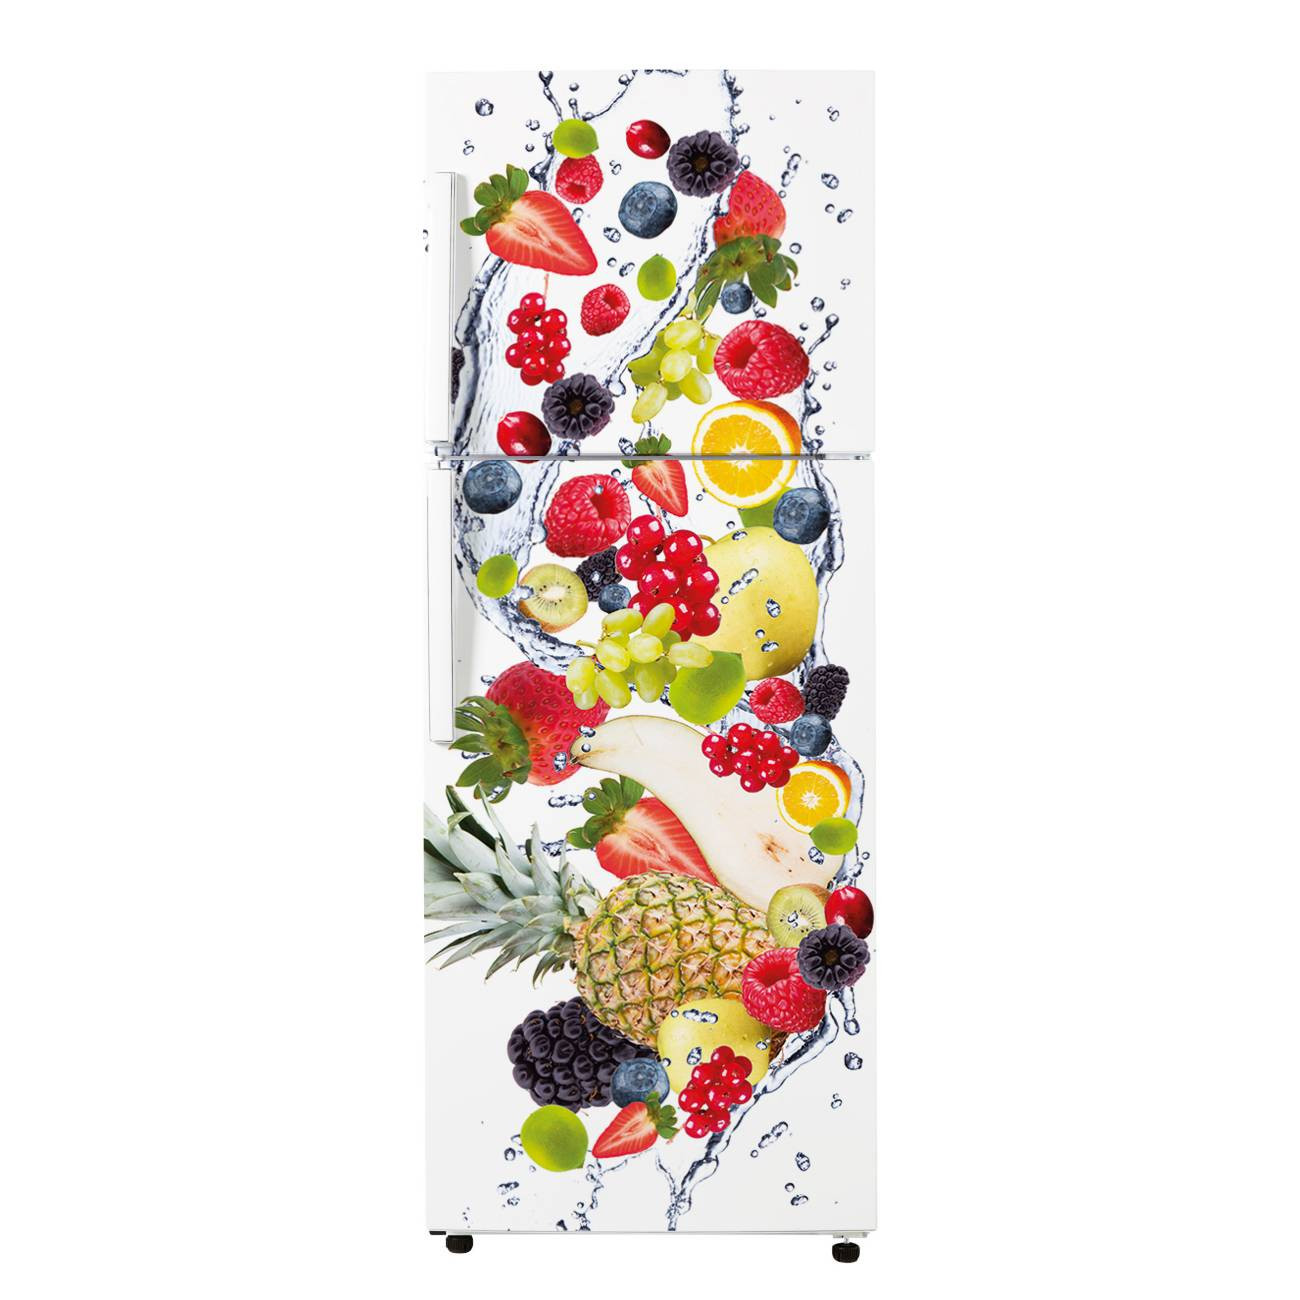 stickers frigo fruits 20 des prix 50 moins cher qu 39 en magasin. Black Bedroom Furniture Sets. Home Design Ideas